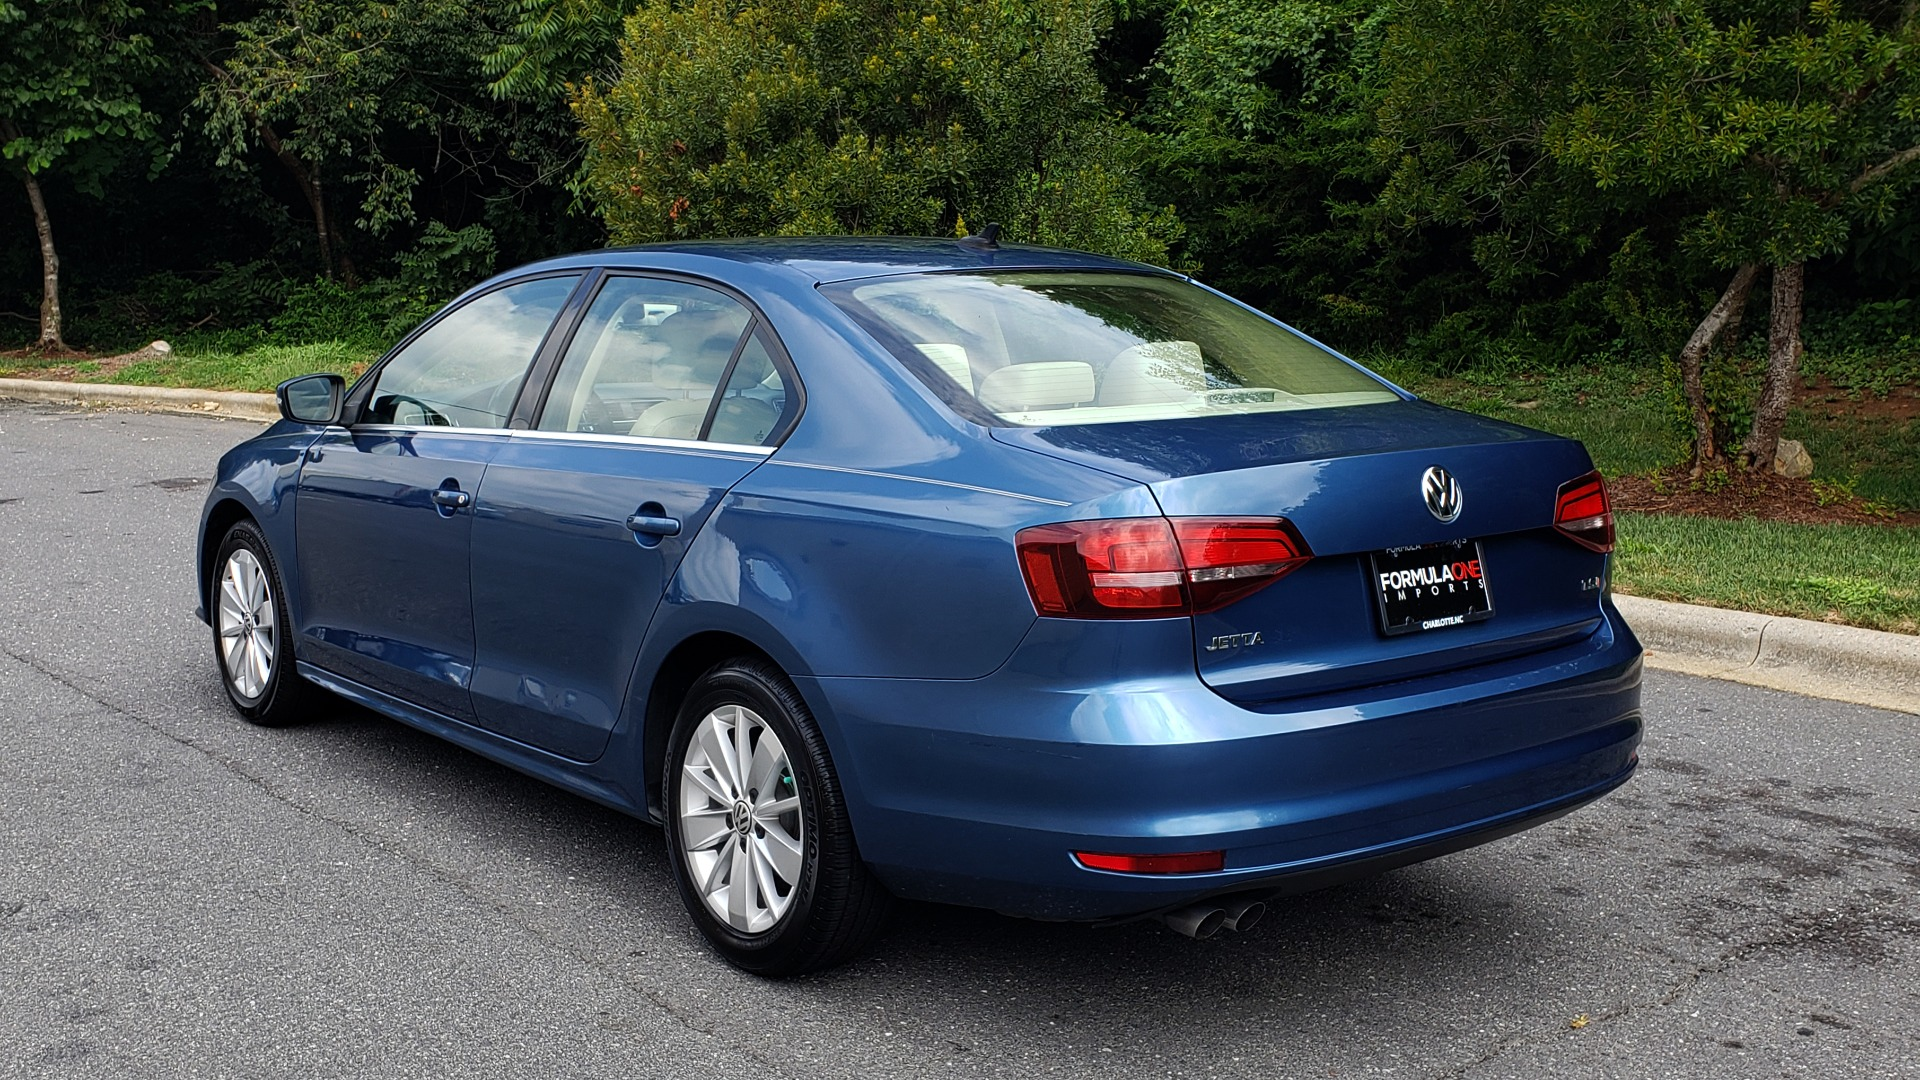 Used 2016 Volkswagen JETTA SEDAN 1.4T SE W/ CONNECTIVITY / 6-SPD AUTO / HTD STS / SUNROOF / REARVIEW for sale Sold at Formula Imports in Charlotte NC 28227 3